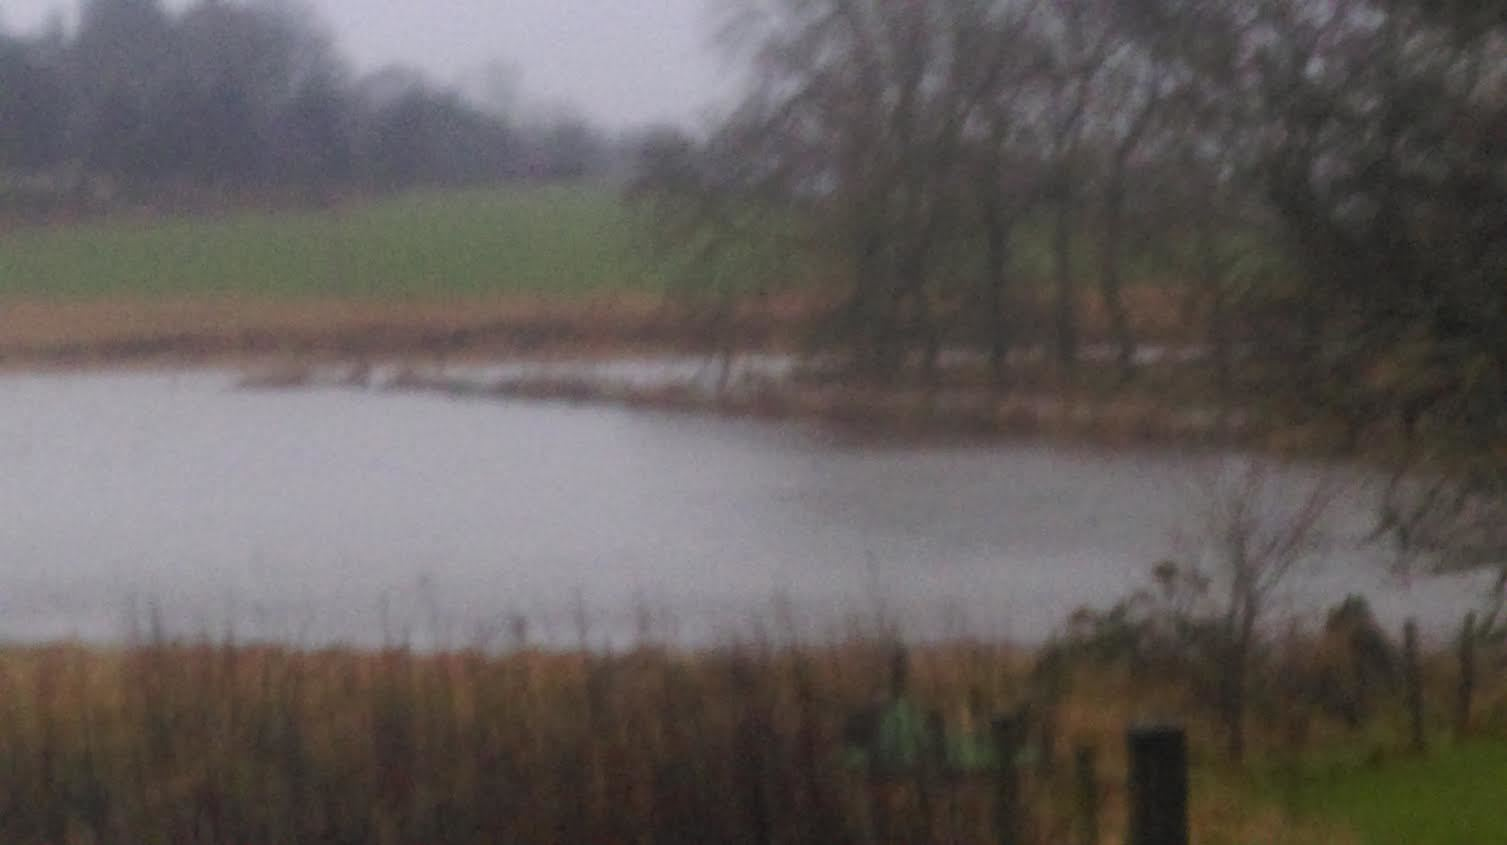 The River Ythan seen rising earlier today